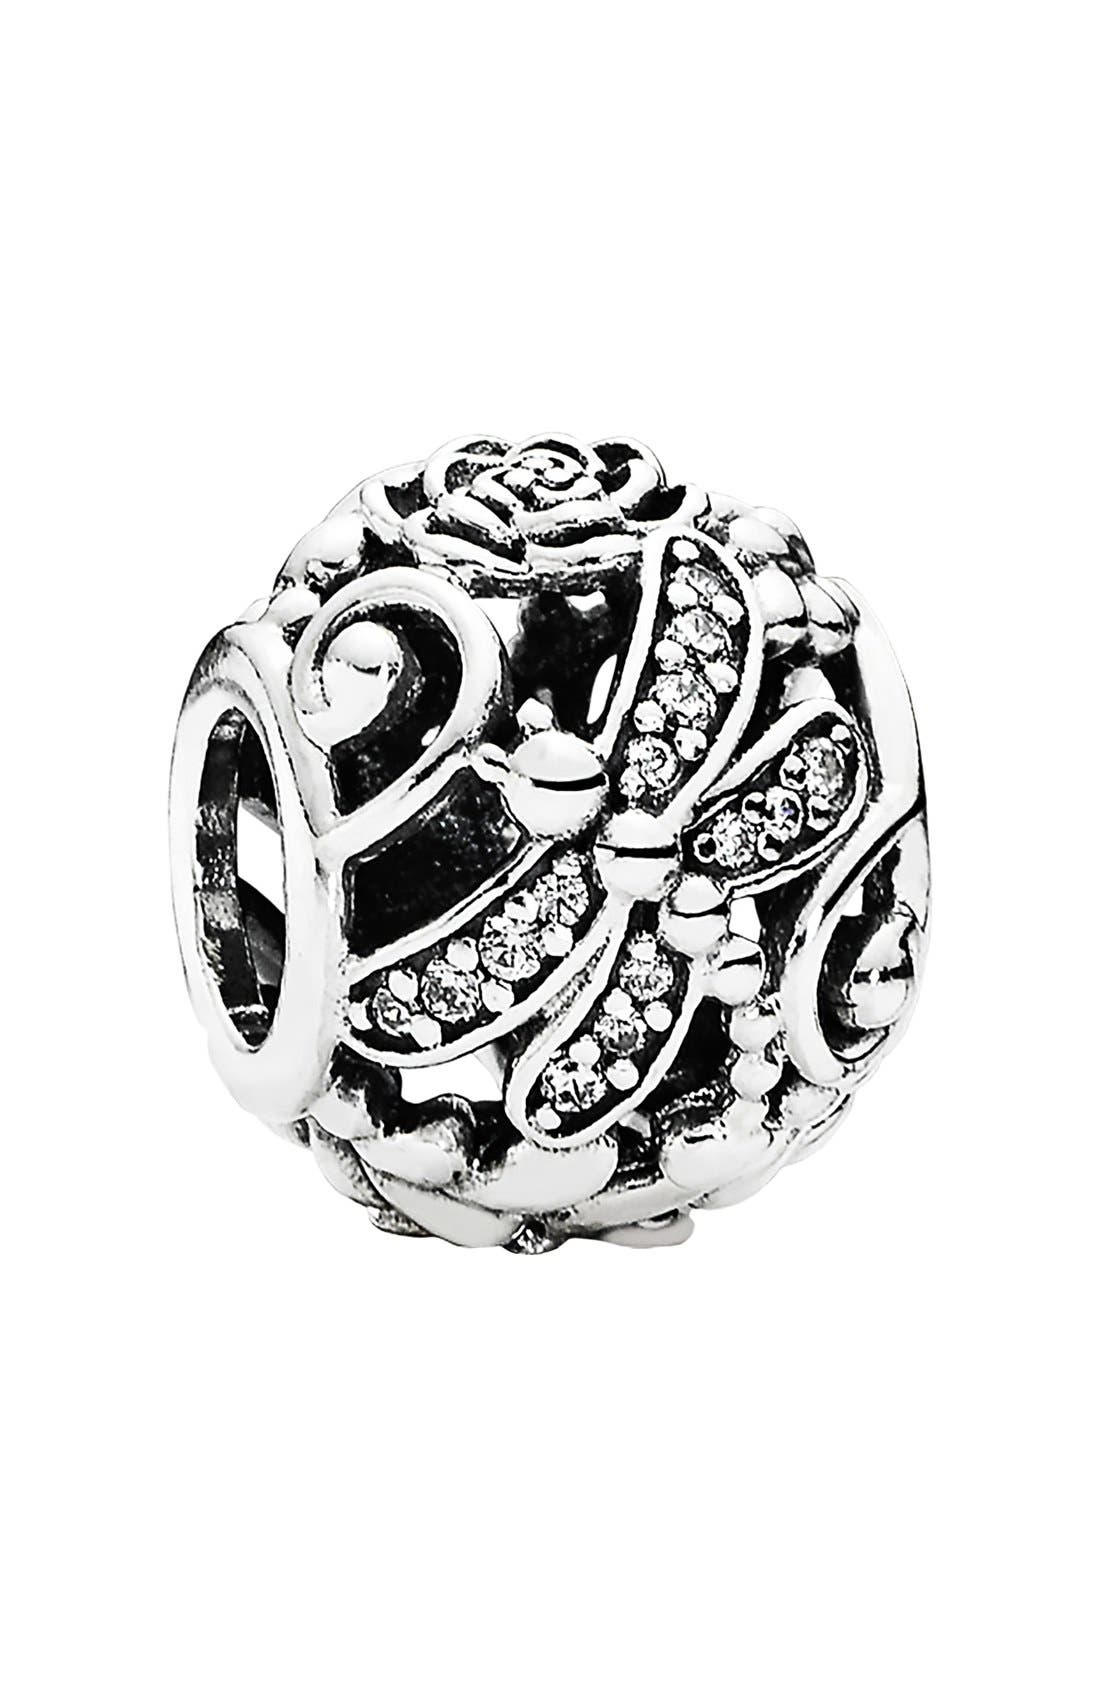 Alternate Image 1 Selected - PANDORA 'Dragonfly Meadow' Charm